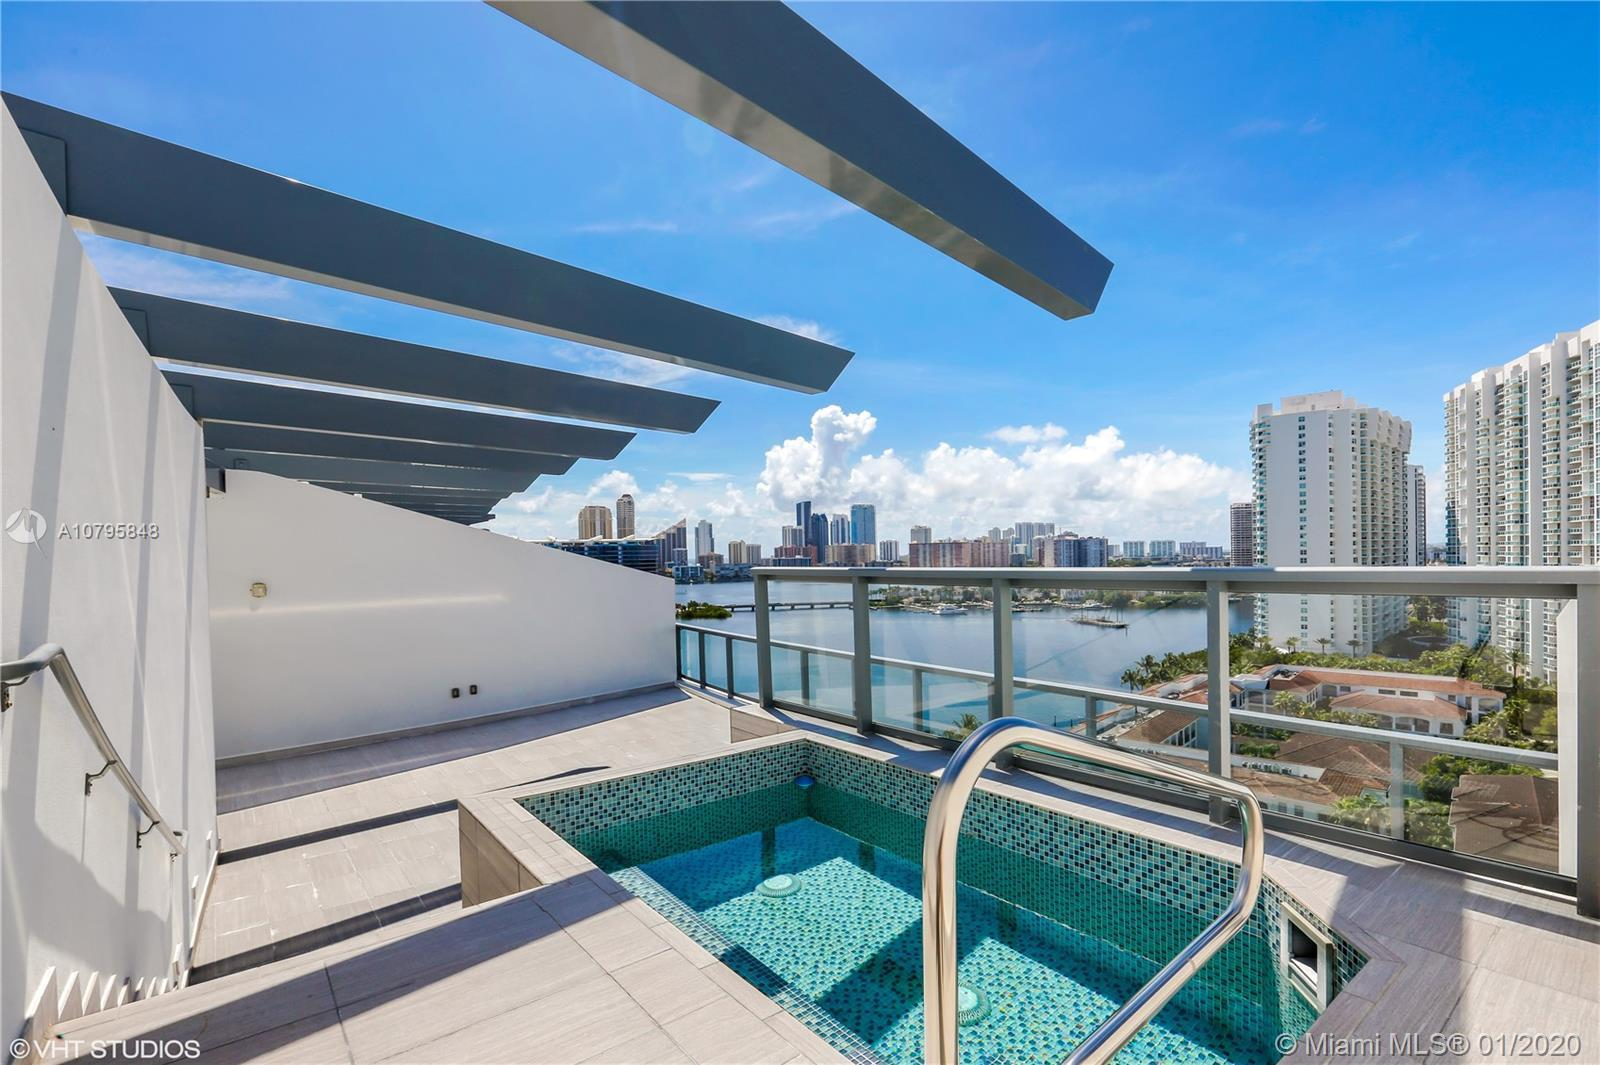 Spectacular 8BD/8BA + 2 half bathrooms upper PH units (2 units combined) at Echo Aventura, each with